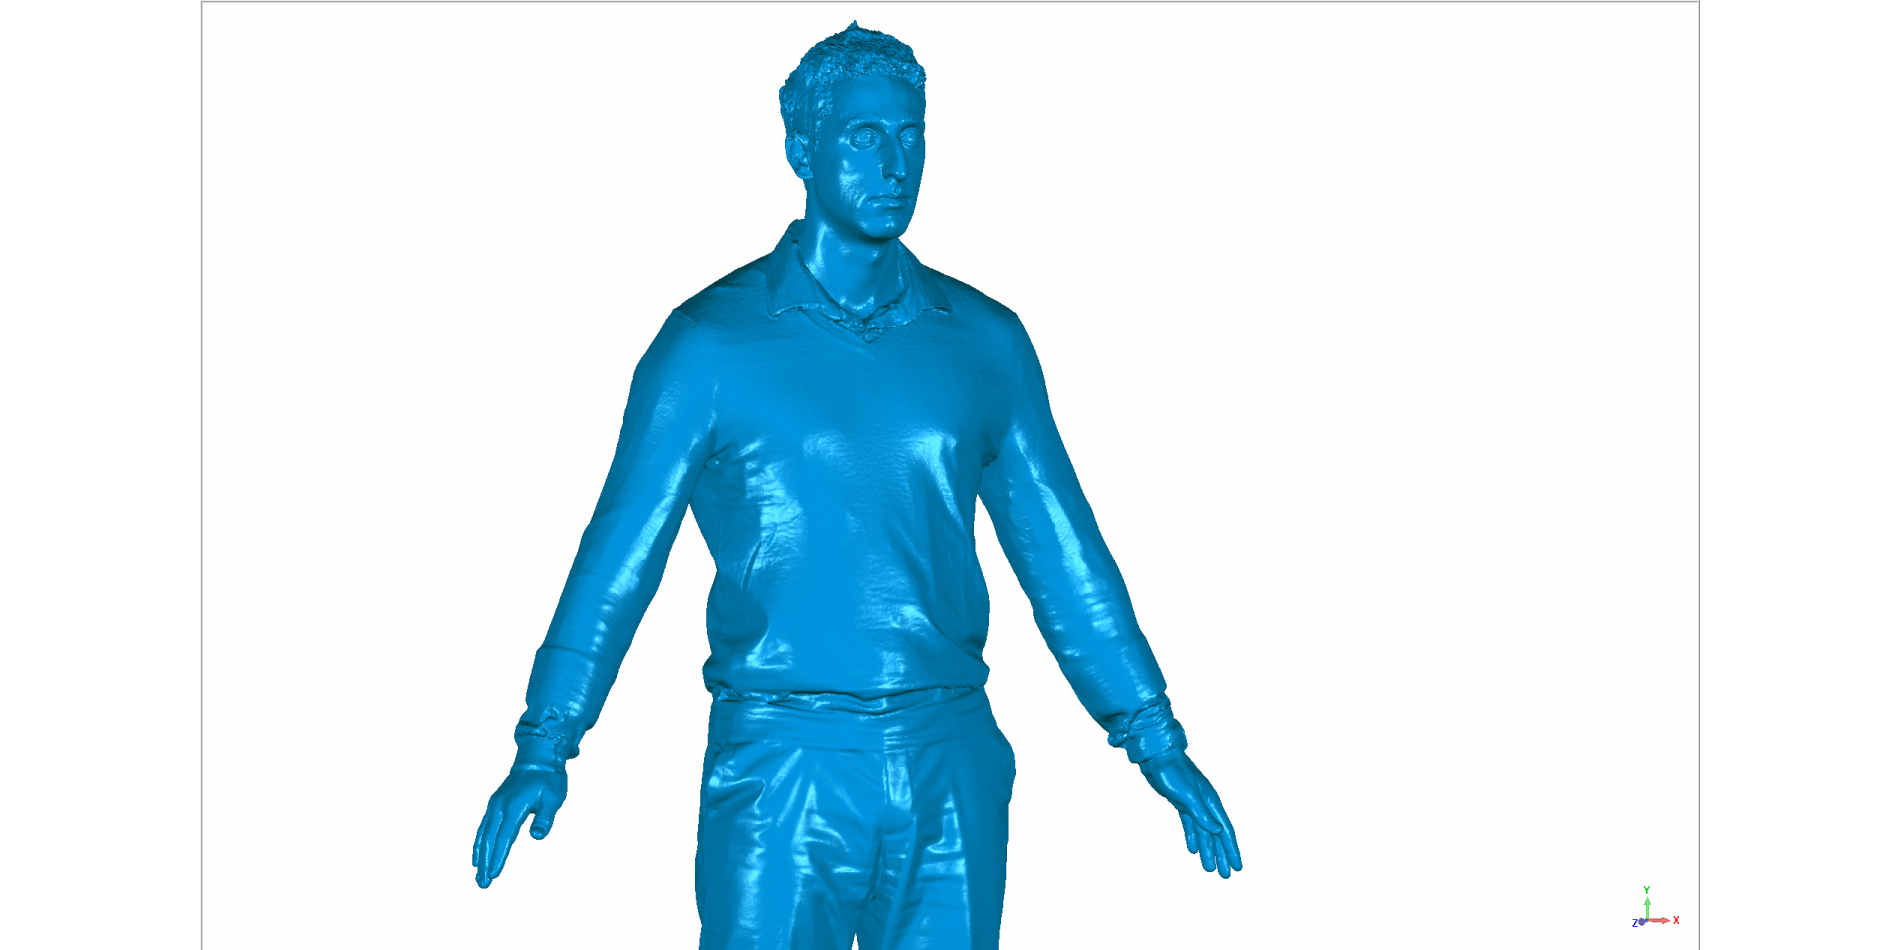 Cyber body scanning for 3d models of people